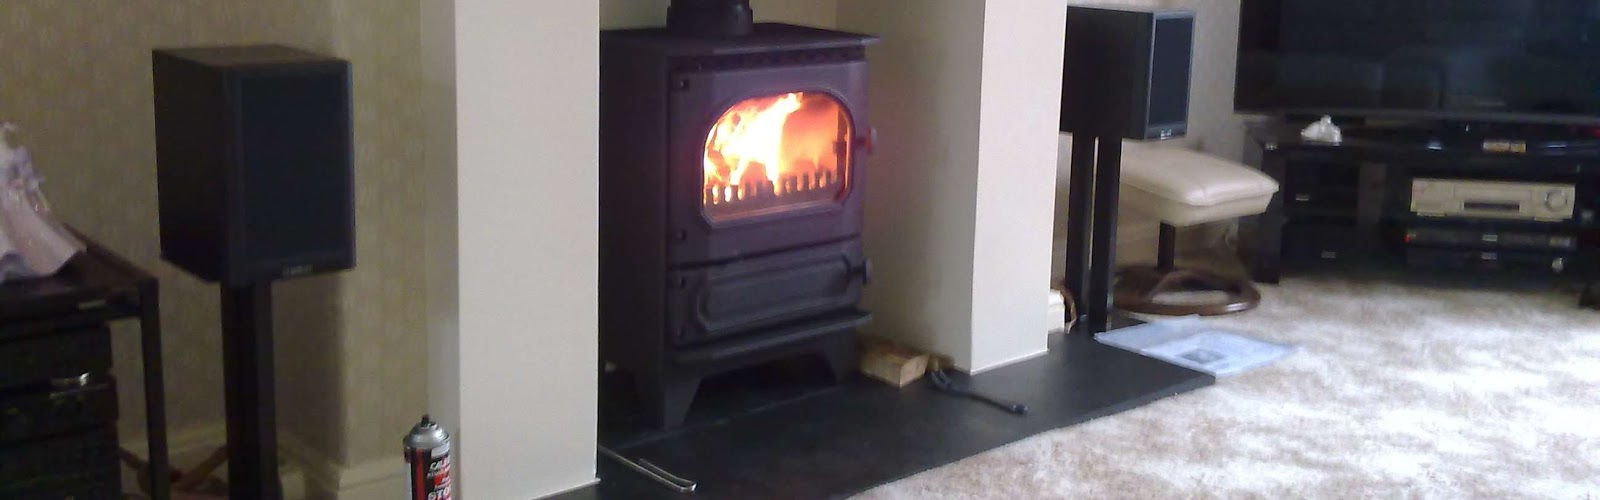 Chimney Sweeper Uxbridge | Capitol Stove & Fire Uxbridge, London, Berkshire & Buckinghamshire